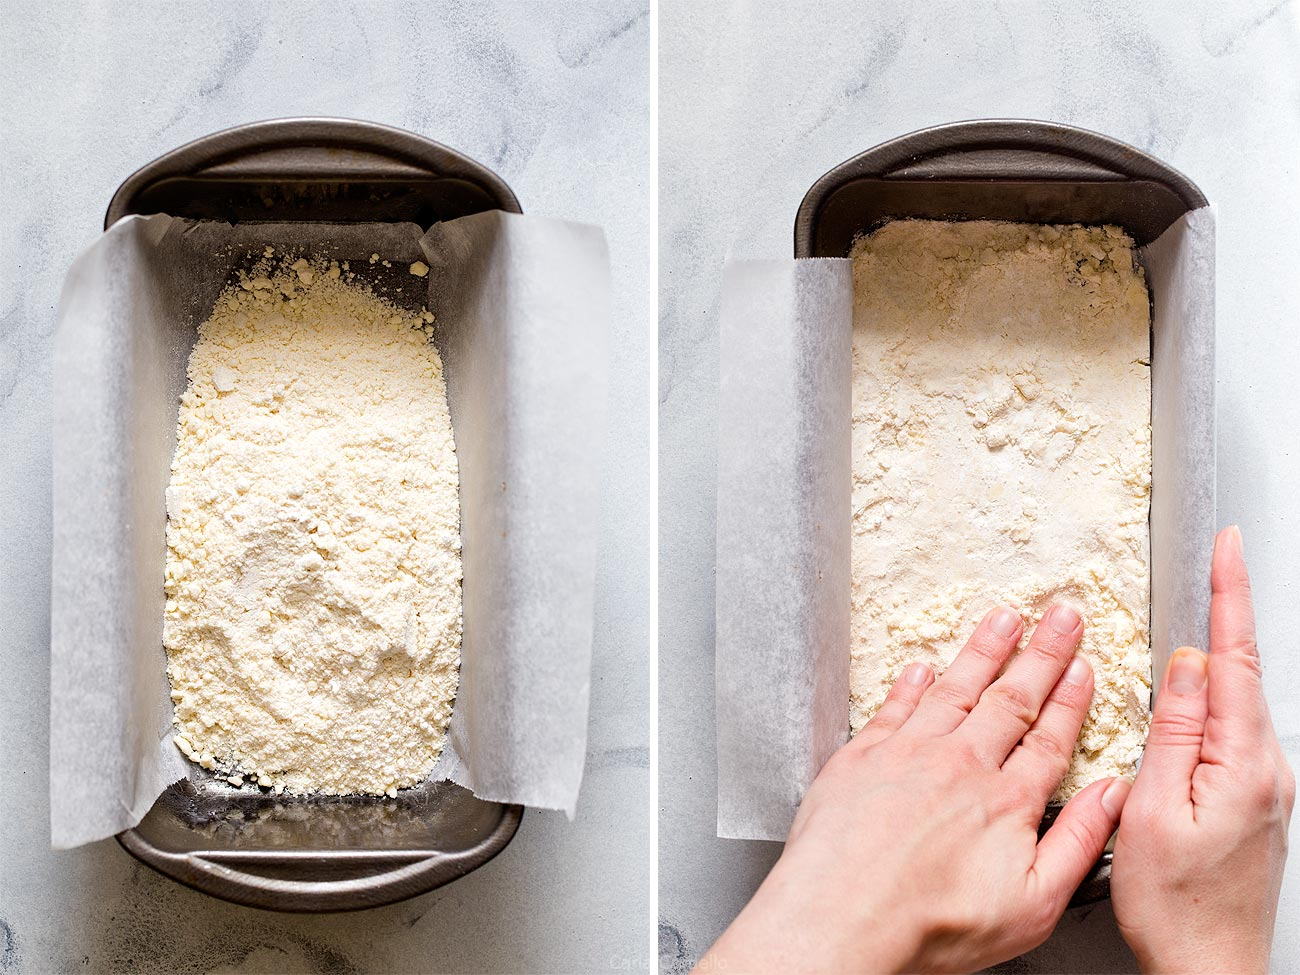 Patting dough into loaf pan for Small Batch Lemon Bars